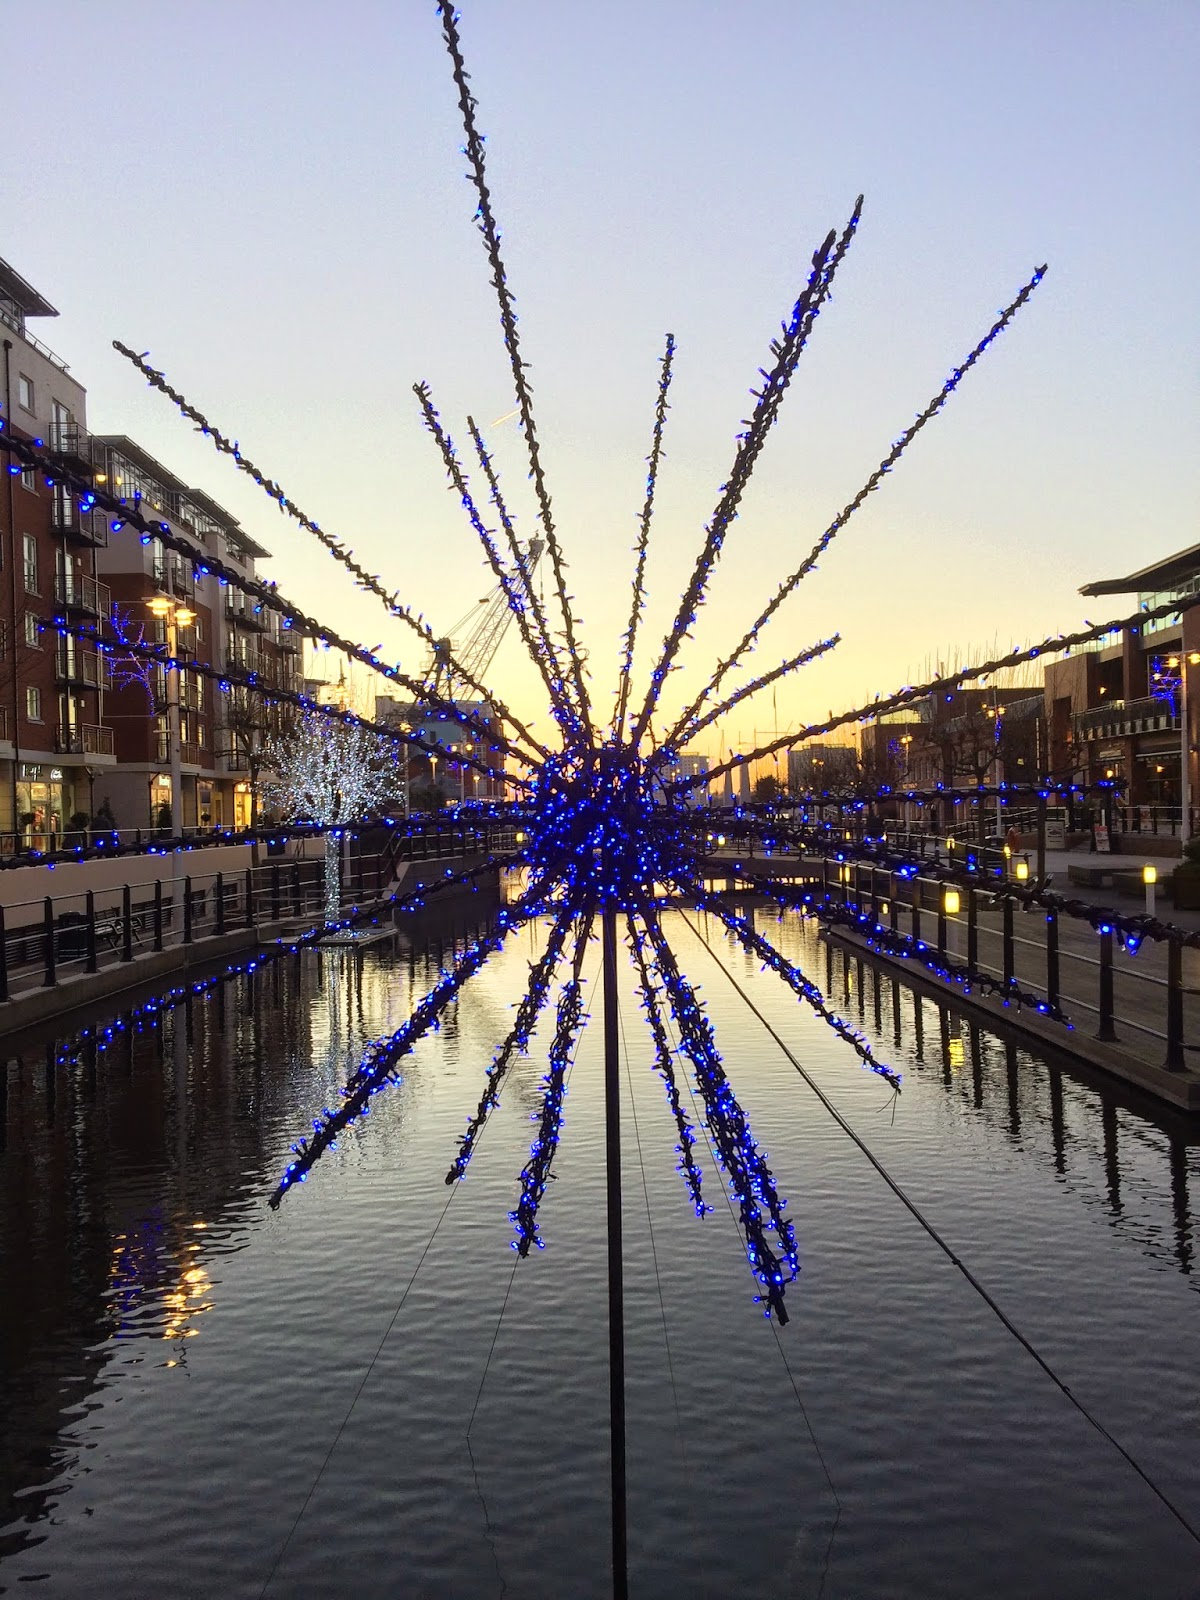 Christmas decorations/lights at Gunwharf Quays Portsmouth